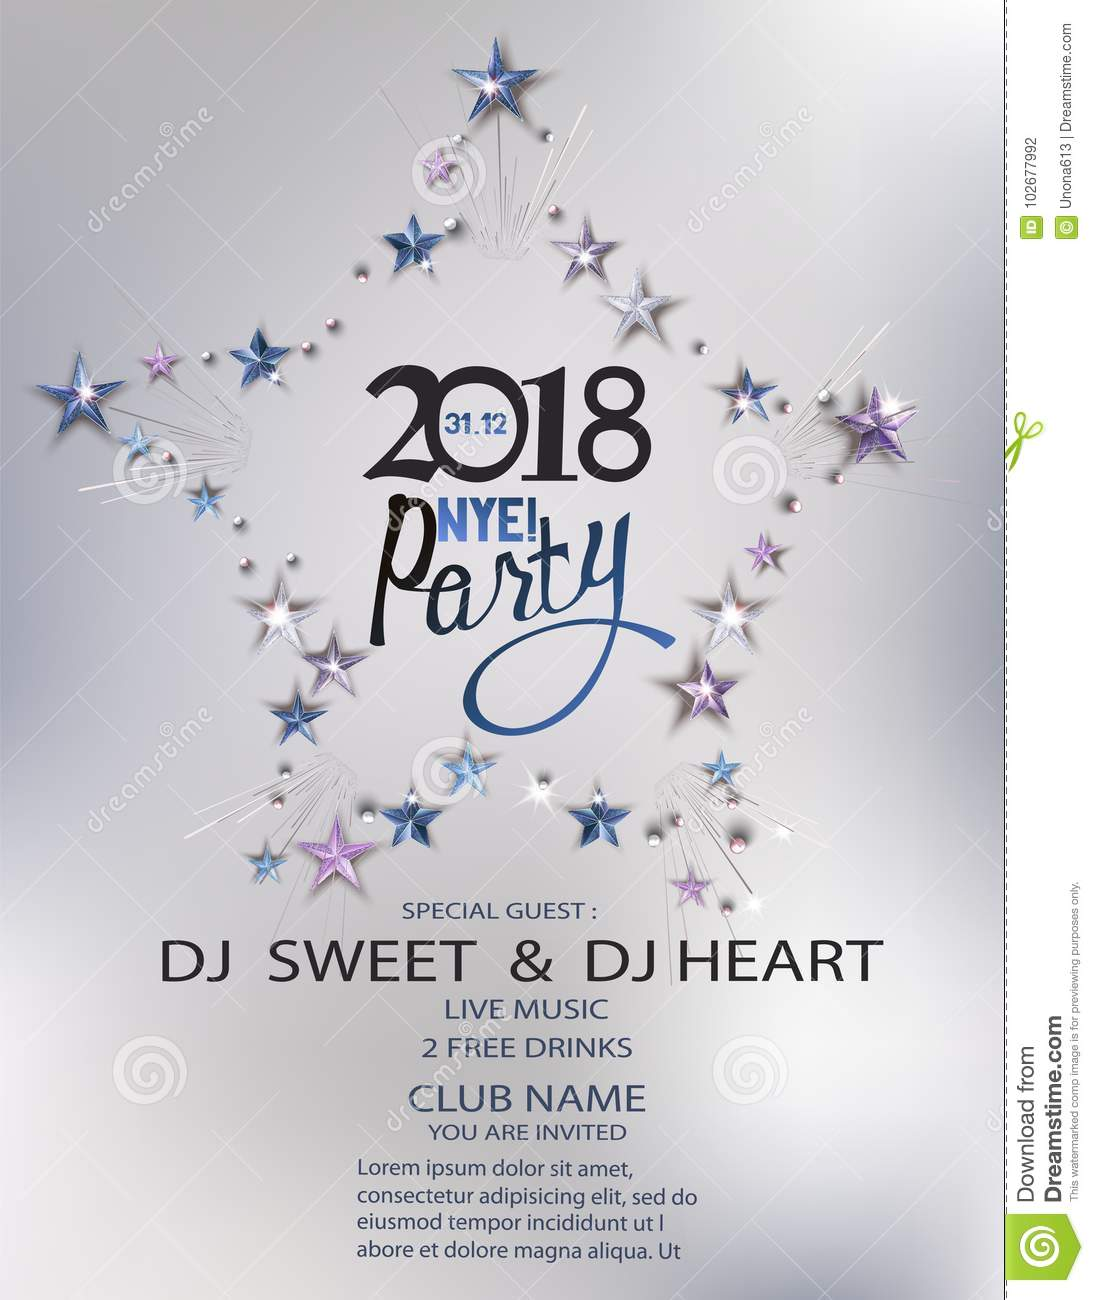 new year eve party invitation card with stars arranged in shape of star